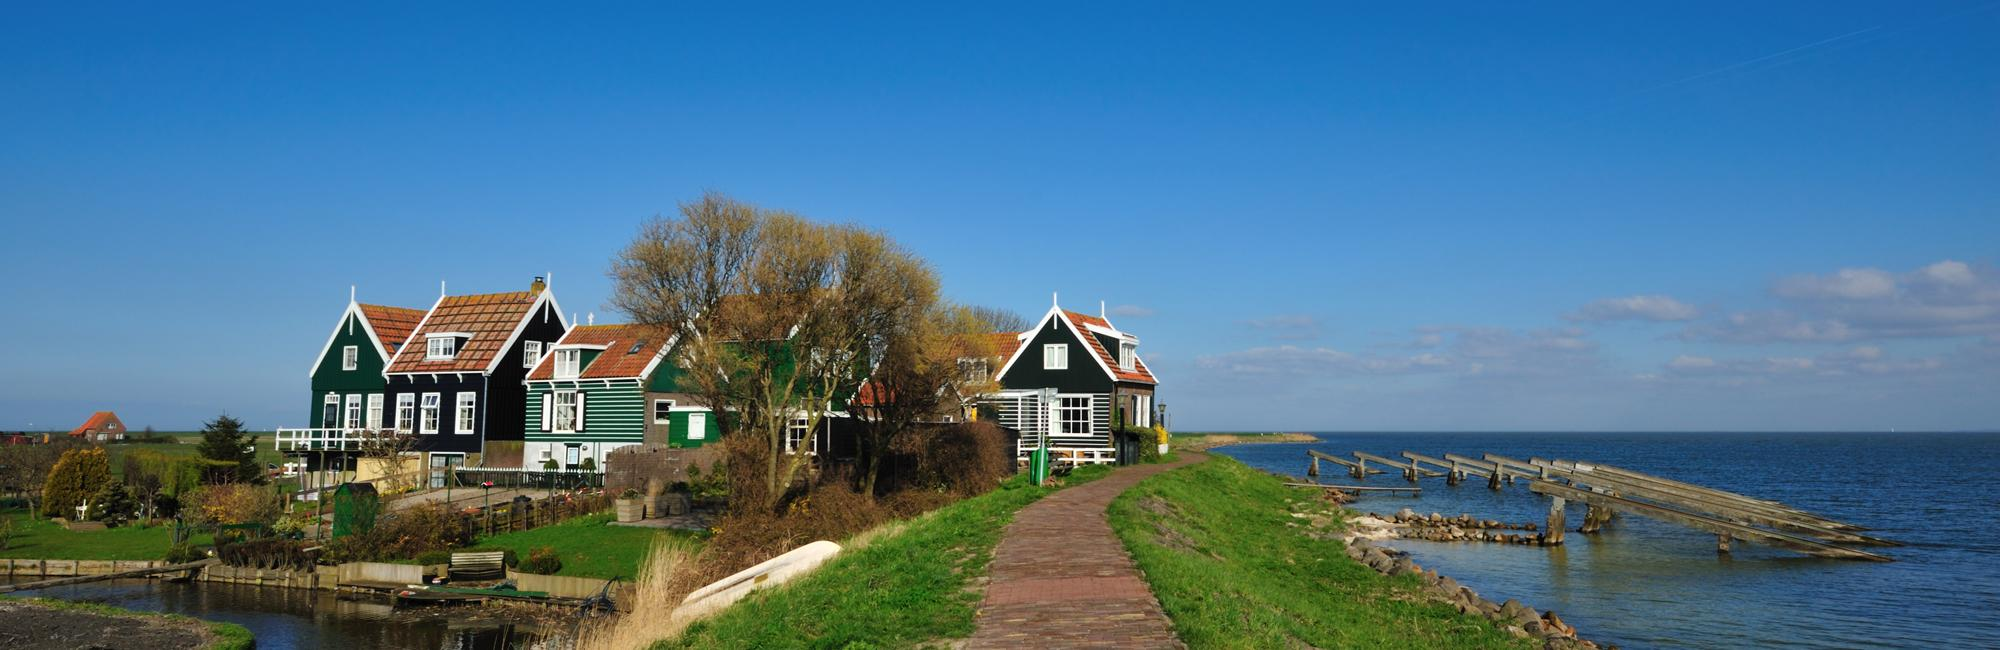 Dutch Bike Tours Radreisen IJsselmeer Grand Tour